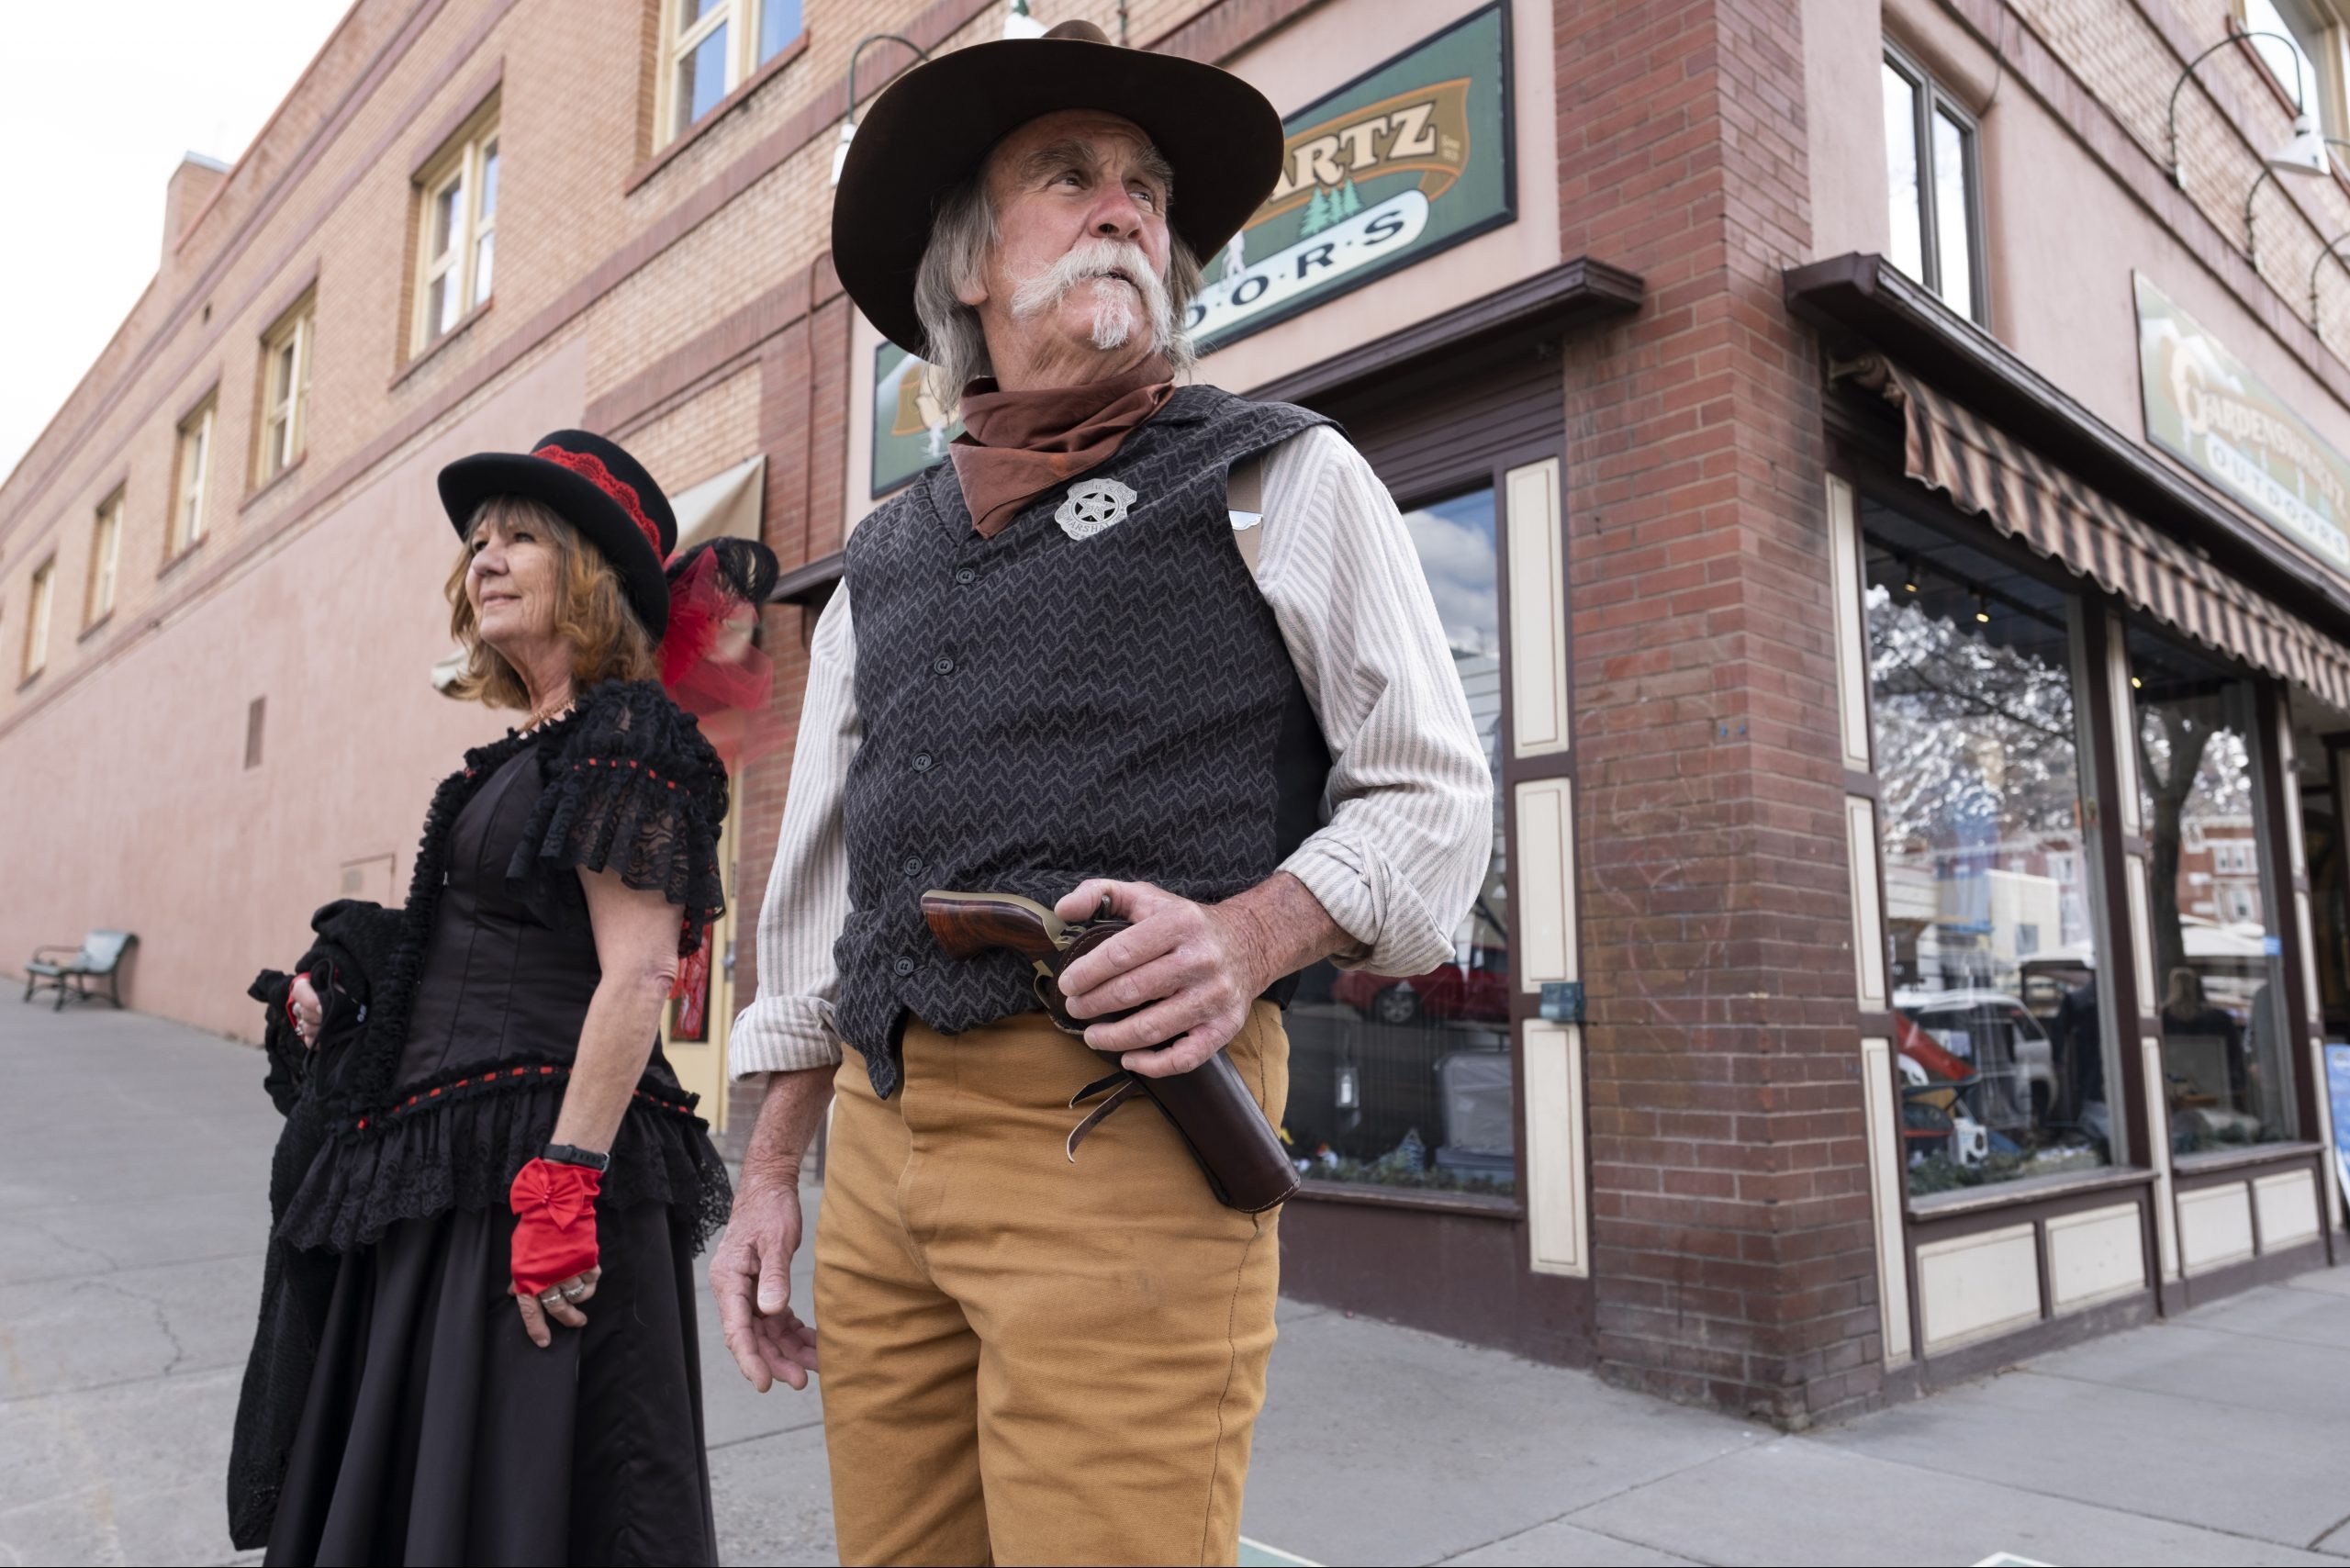 Old West actors Cathy Roberts and Scott Perez stand on the lookout for unmasked visitors in Durango, Colorado, on March 21, 2021. Durango doesn't require people to wear masks outdoors but does when people enter any businesses or public buildings. (Jeremy Wade Shockley for KHN)